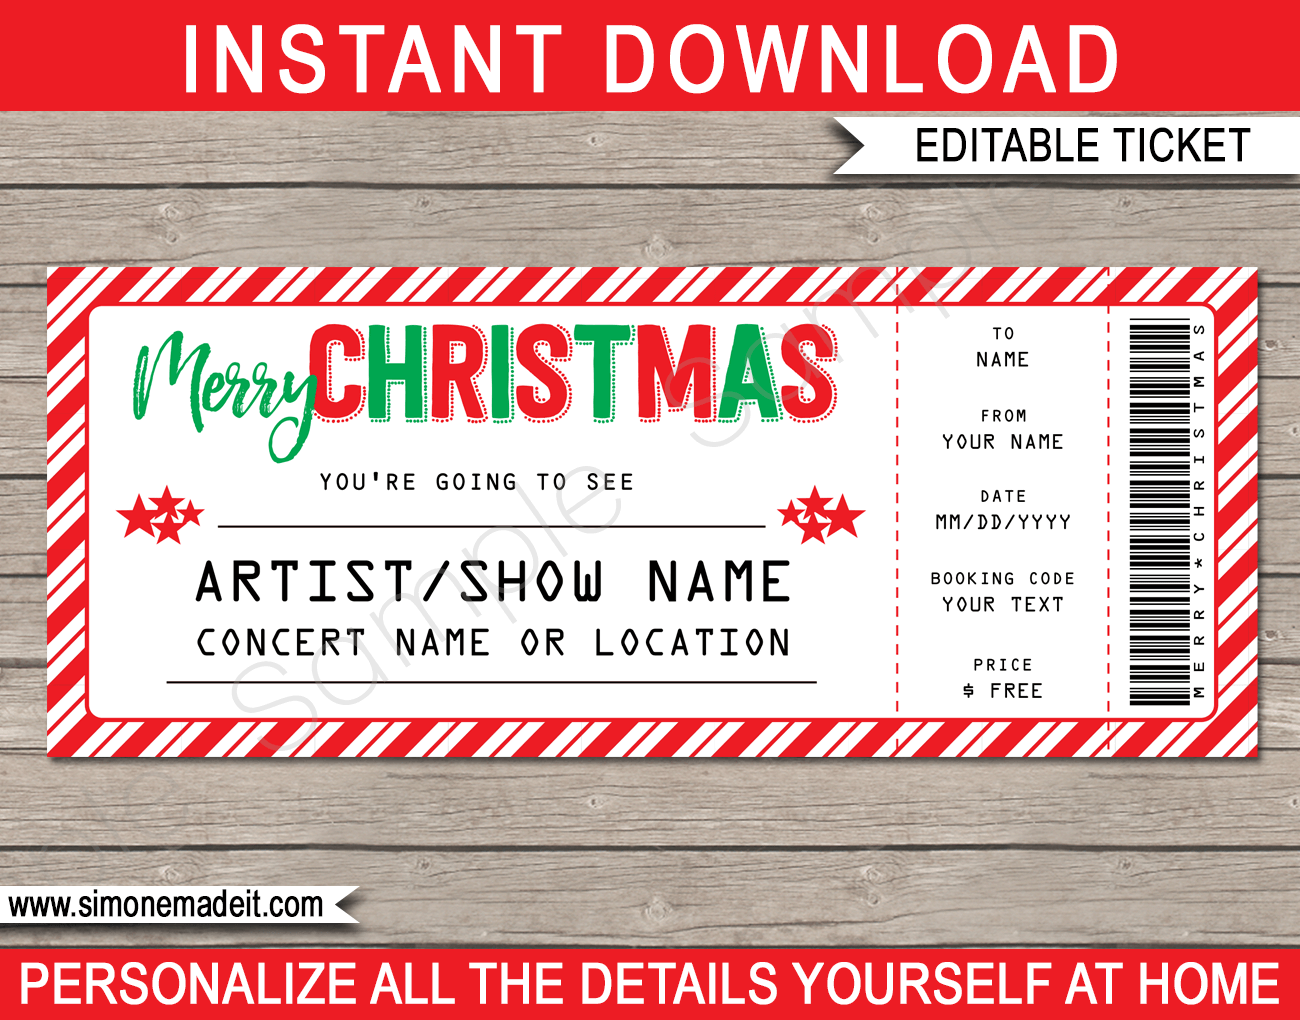 Concert Ticket Template Free Download Amazing Christmas Gift Concert Ticket Template  Red Green & White .